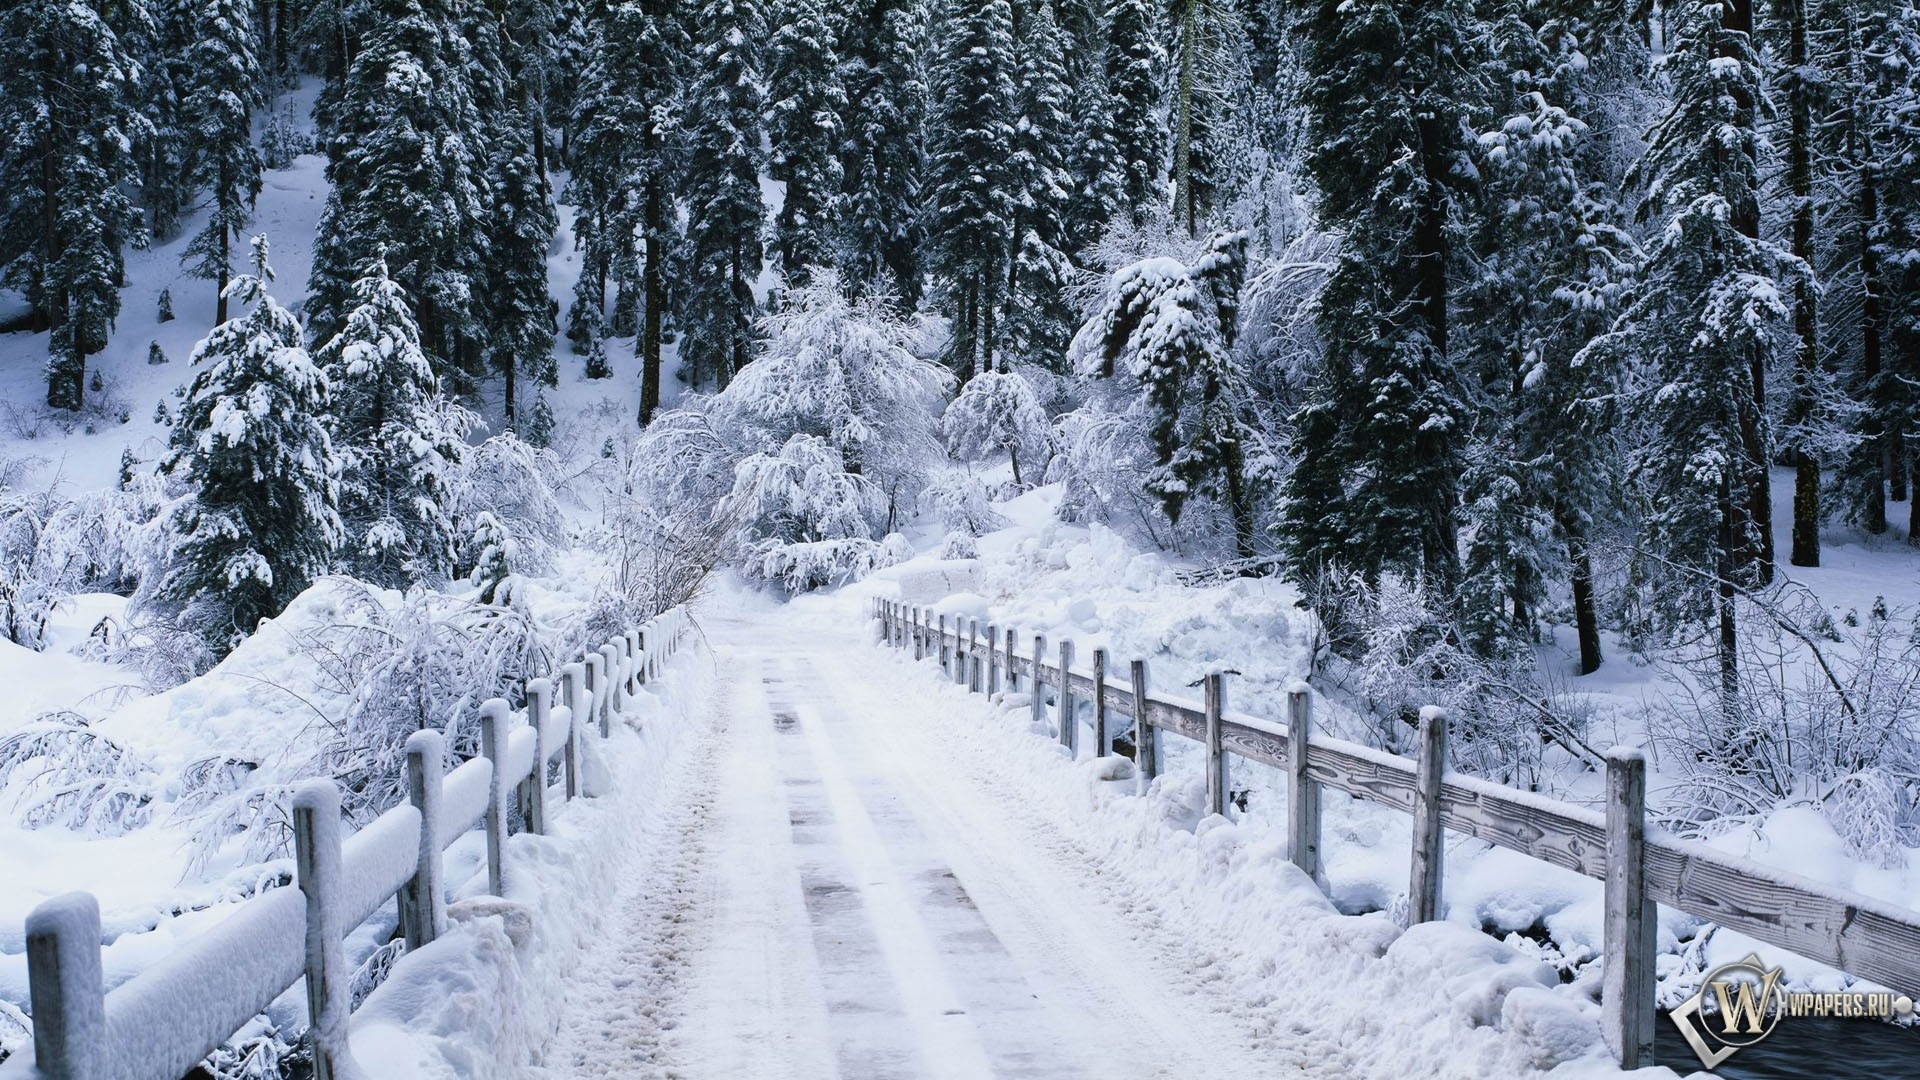 Snowy bridge 1920x1080